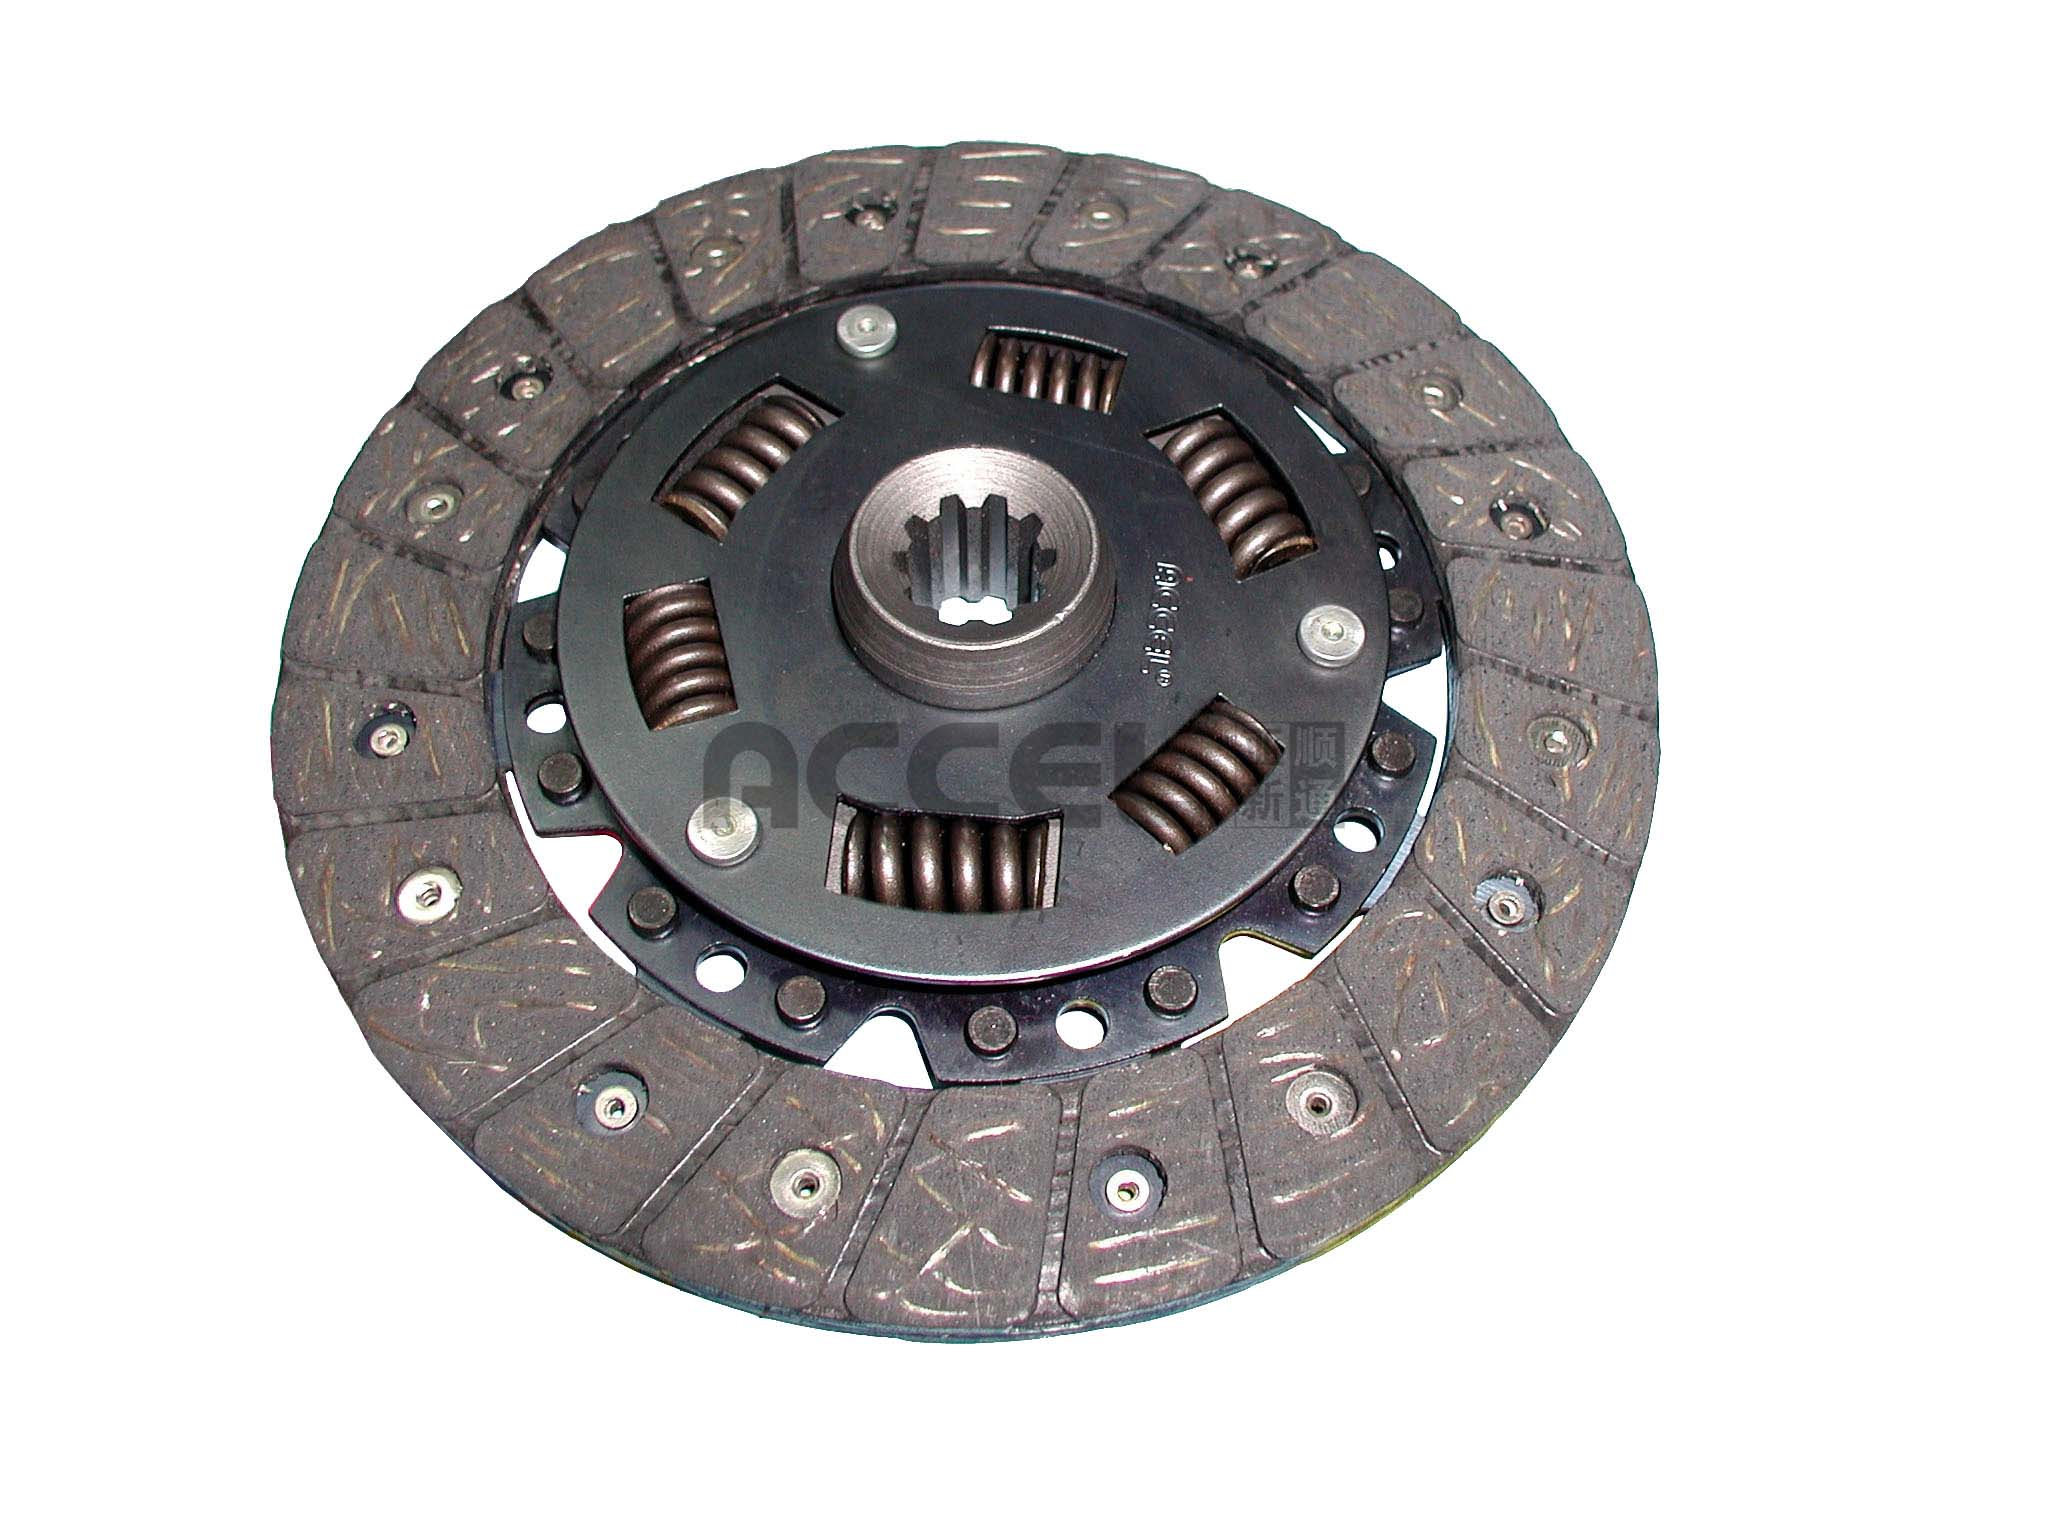 Clutch Disc/OE:NULL/180*125*10*20/AV-001/AgriculturalVehicles/CL0833